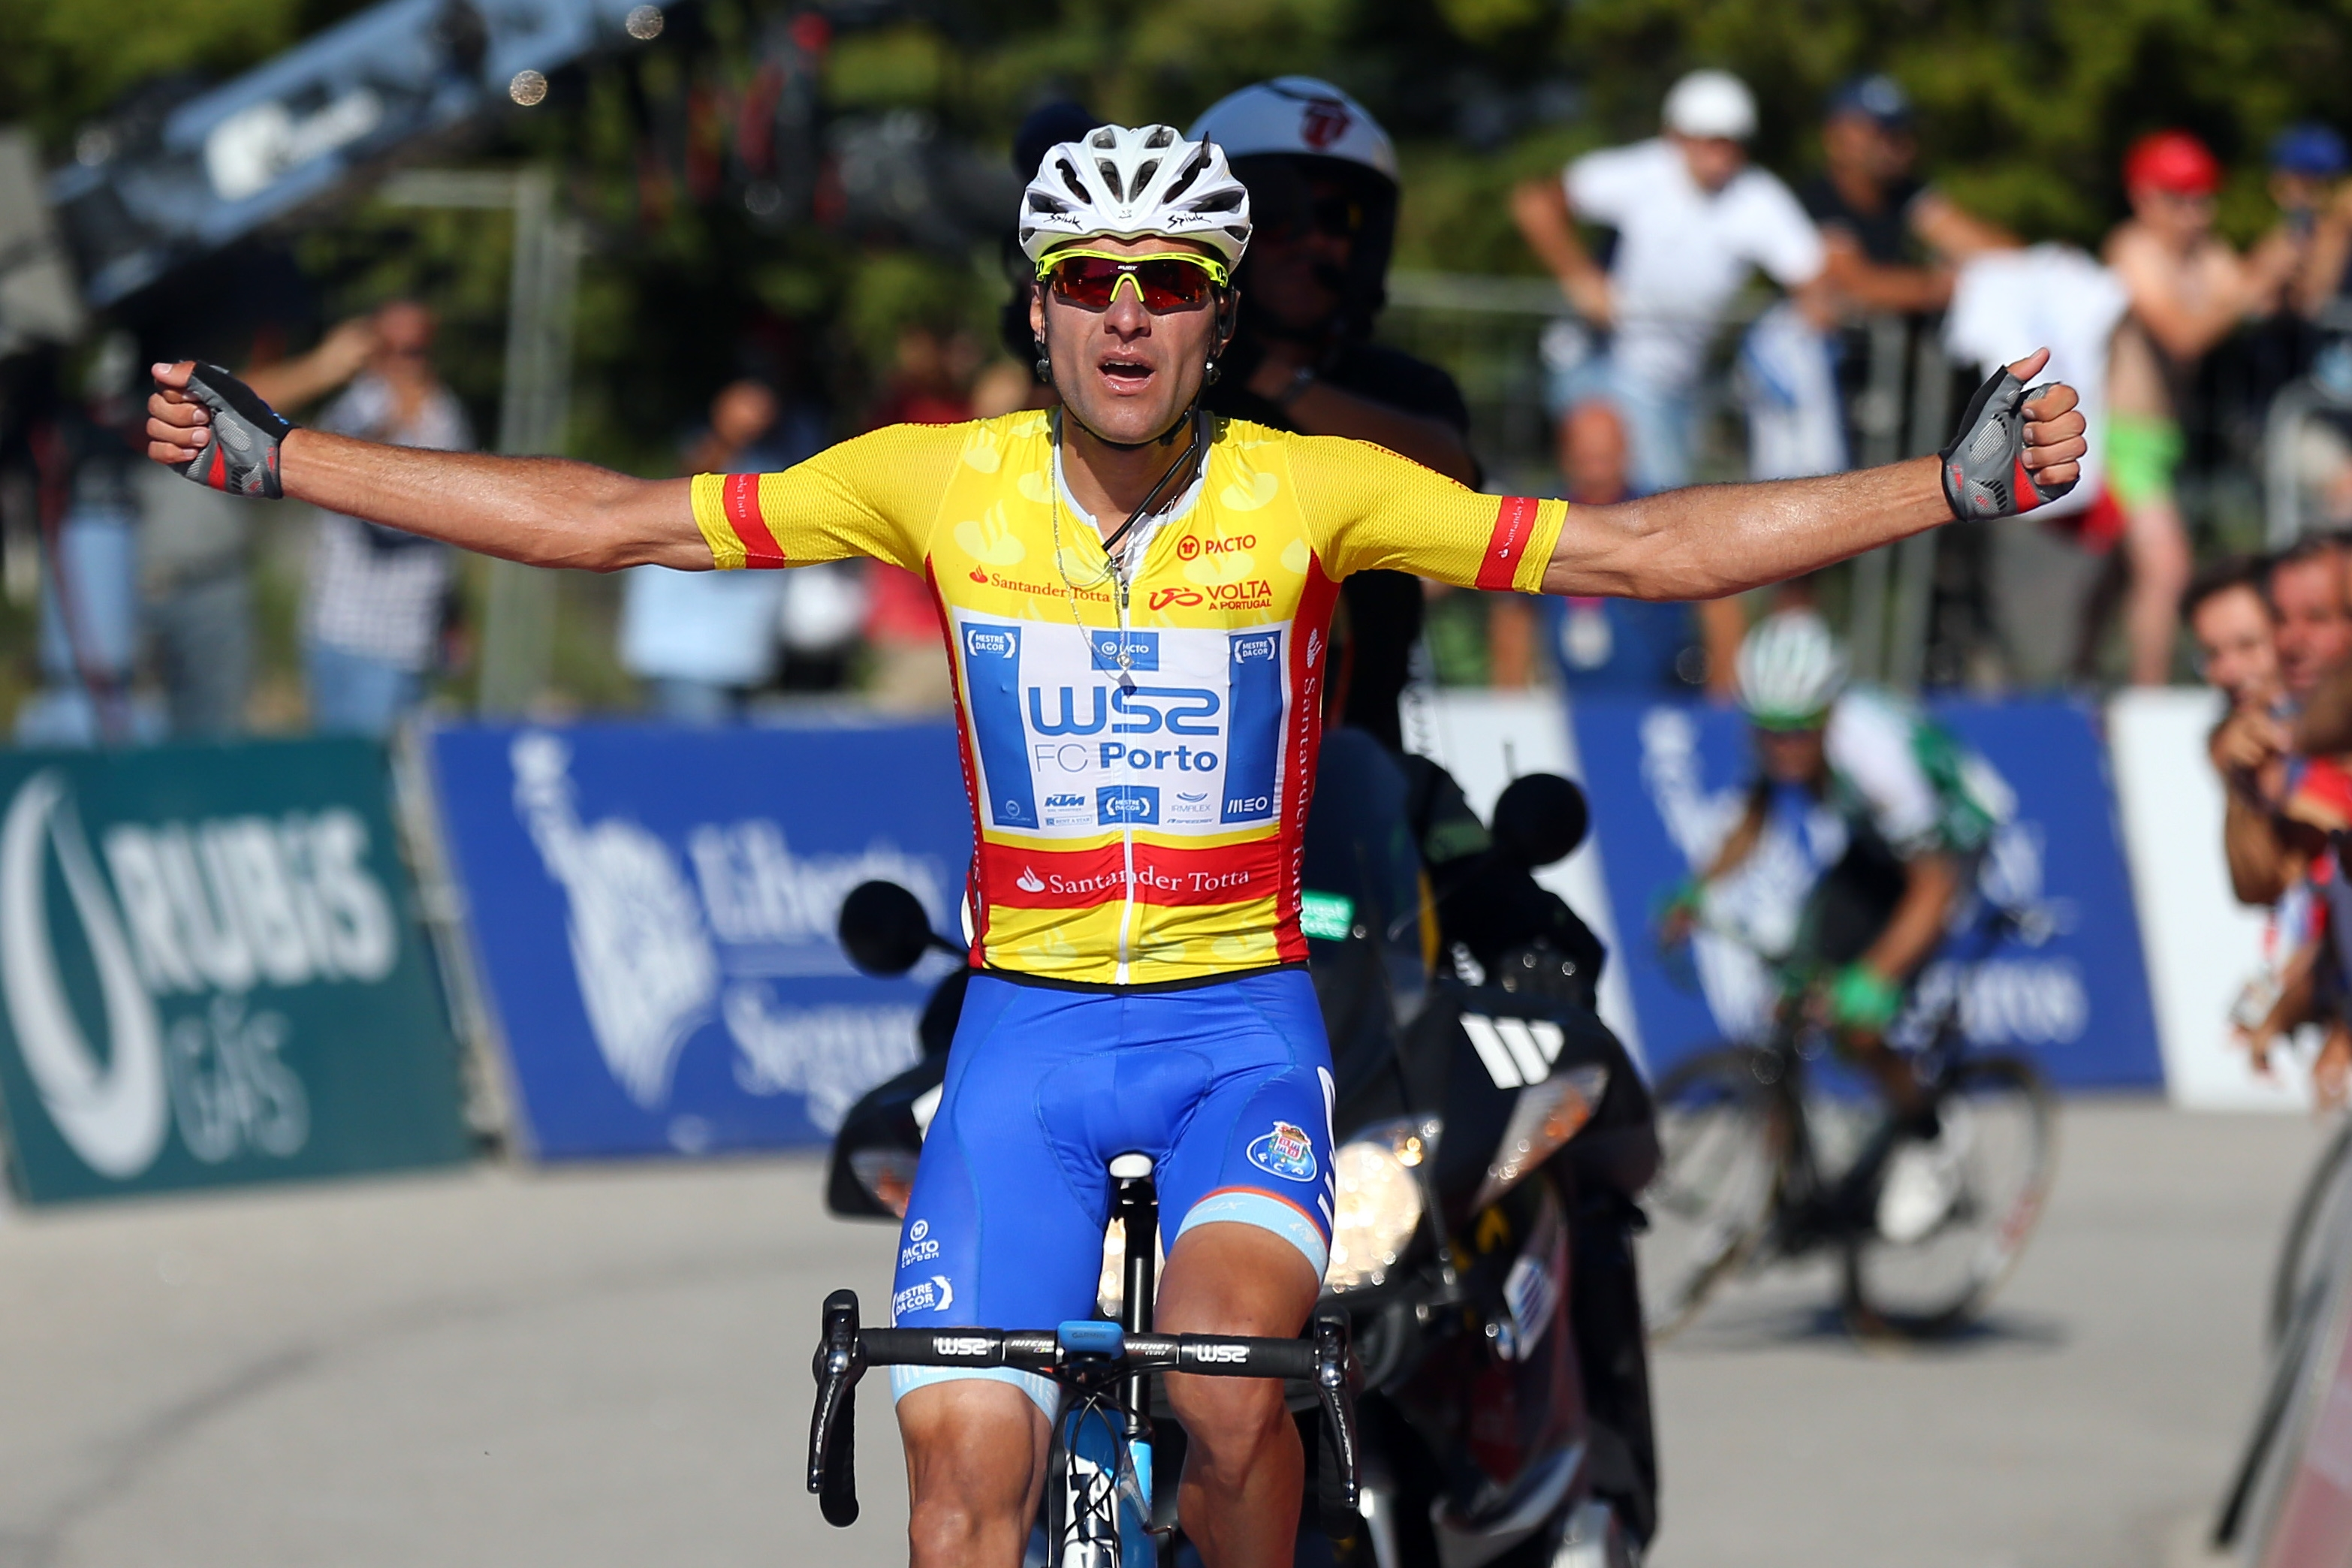 Photo of Raul Alarcon wins third stage of the Tour of Portugal and takes the lead of the race